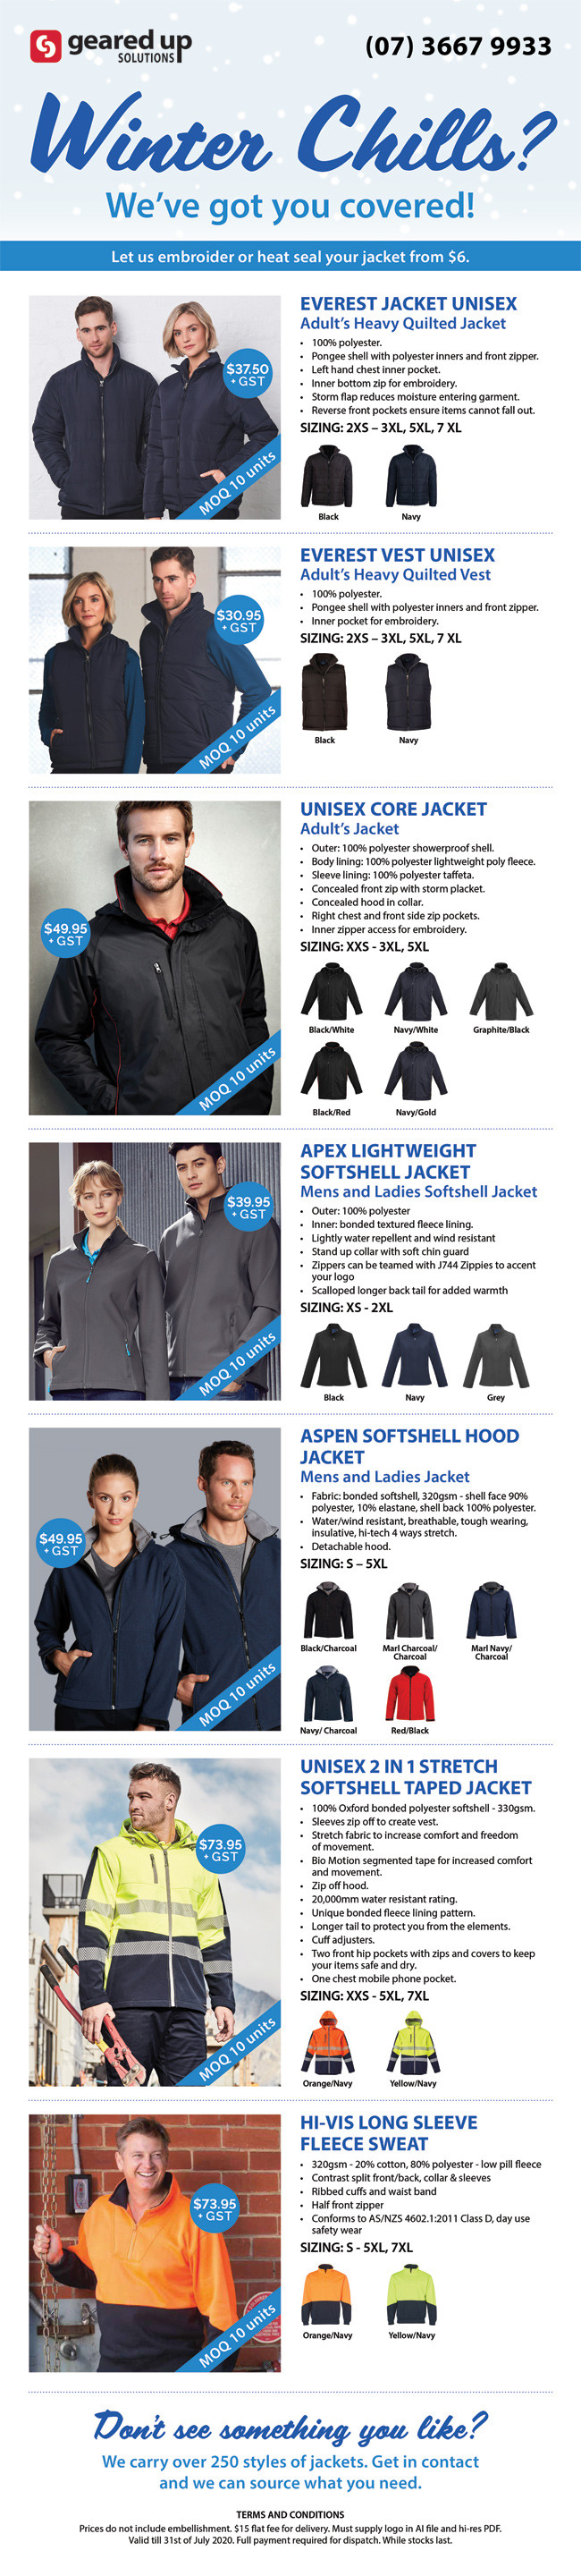 Winter Chills - We've Got You Covered!